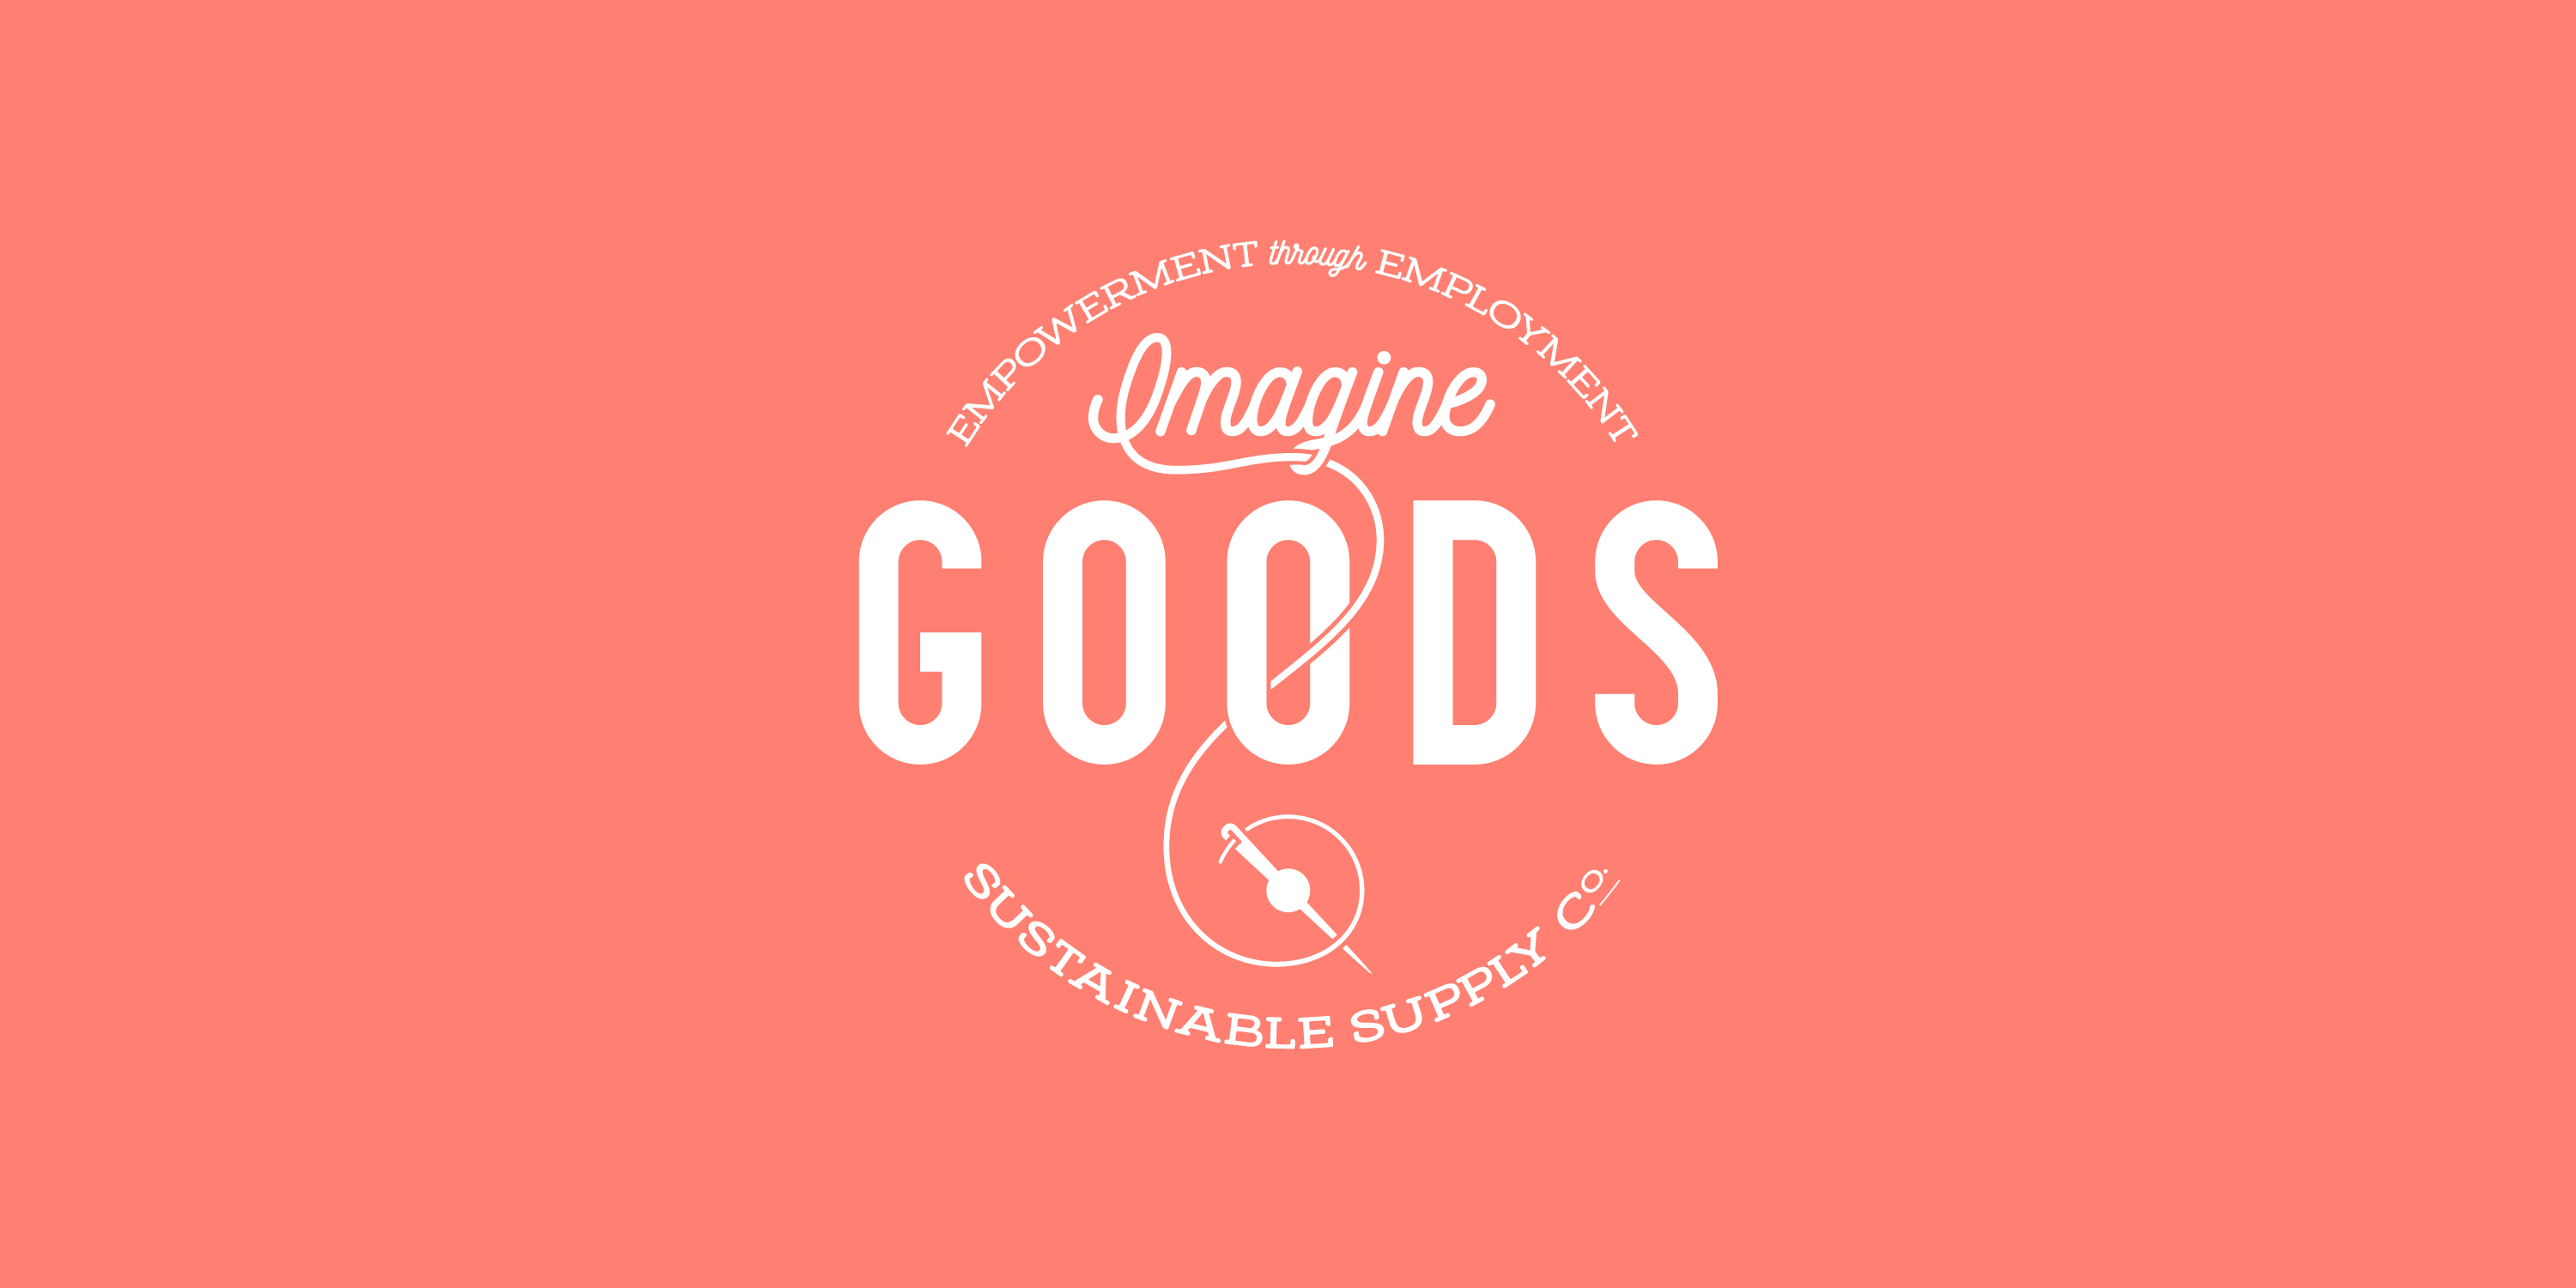 /assets/imaginegoods/g3_website_project_imaginegoods_logo.jpg